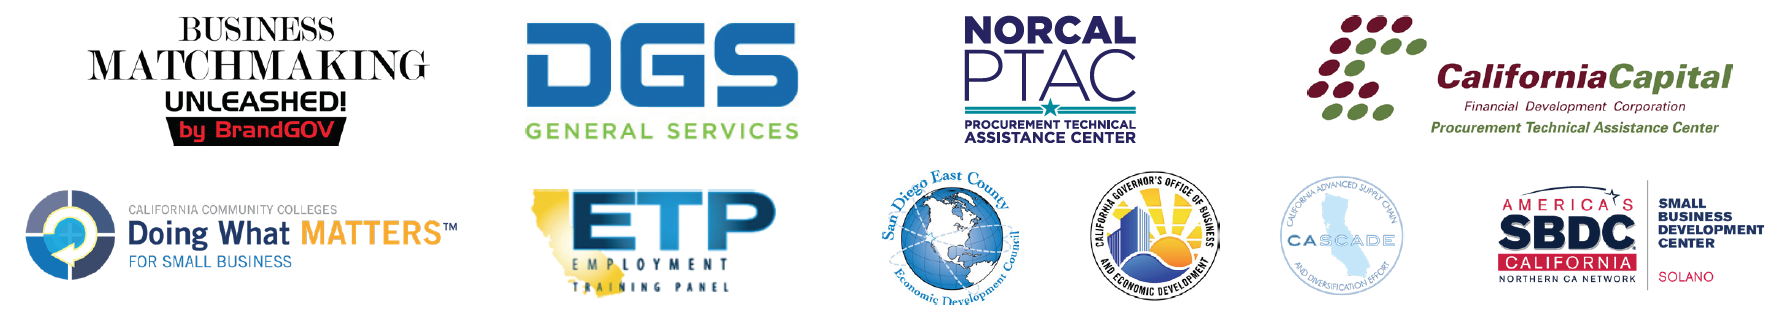 Norcal Defense Supply Chain Resource Fair & Procurement Expo